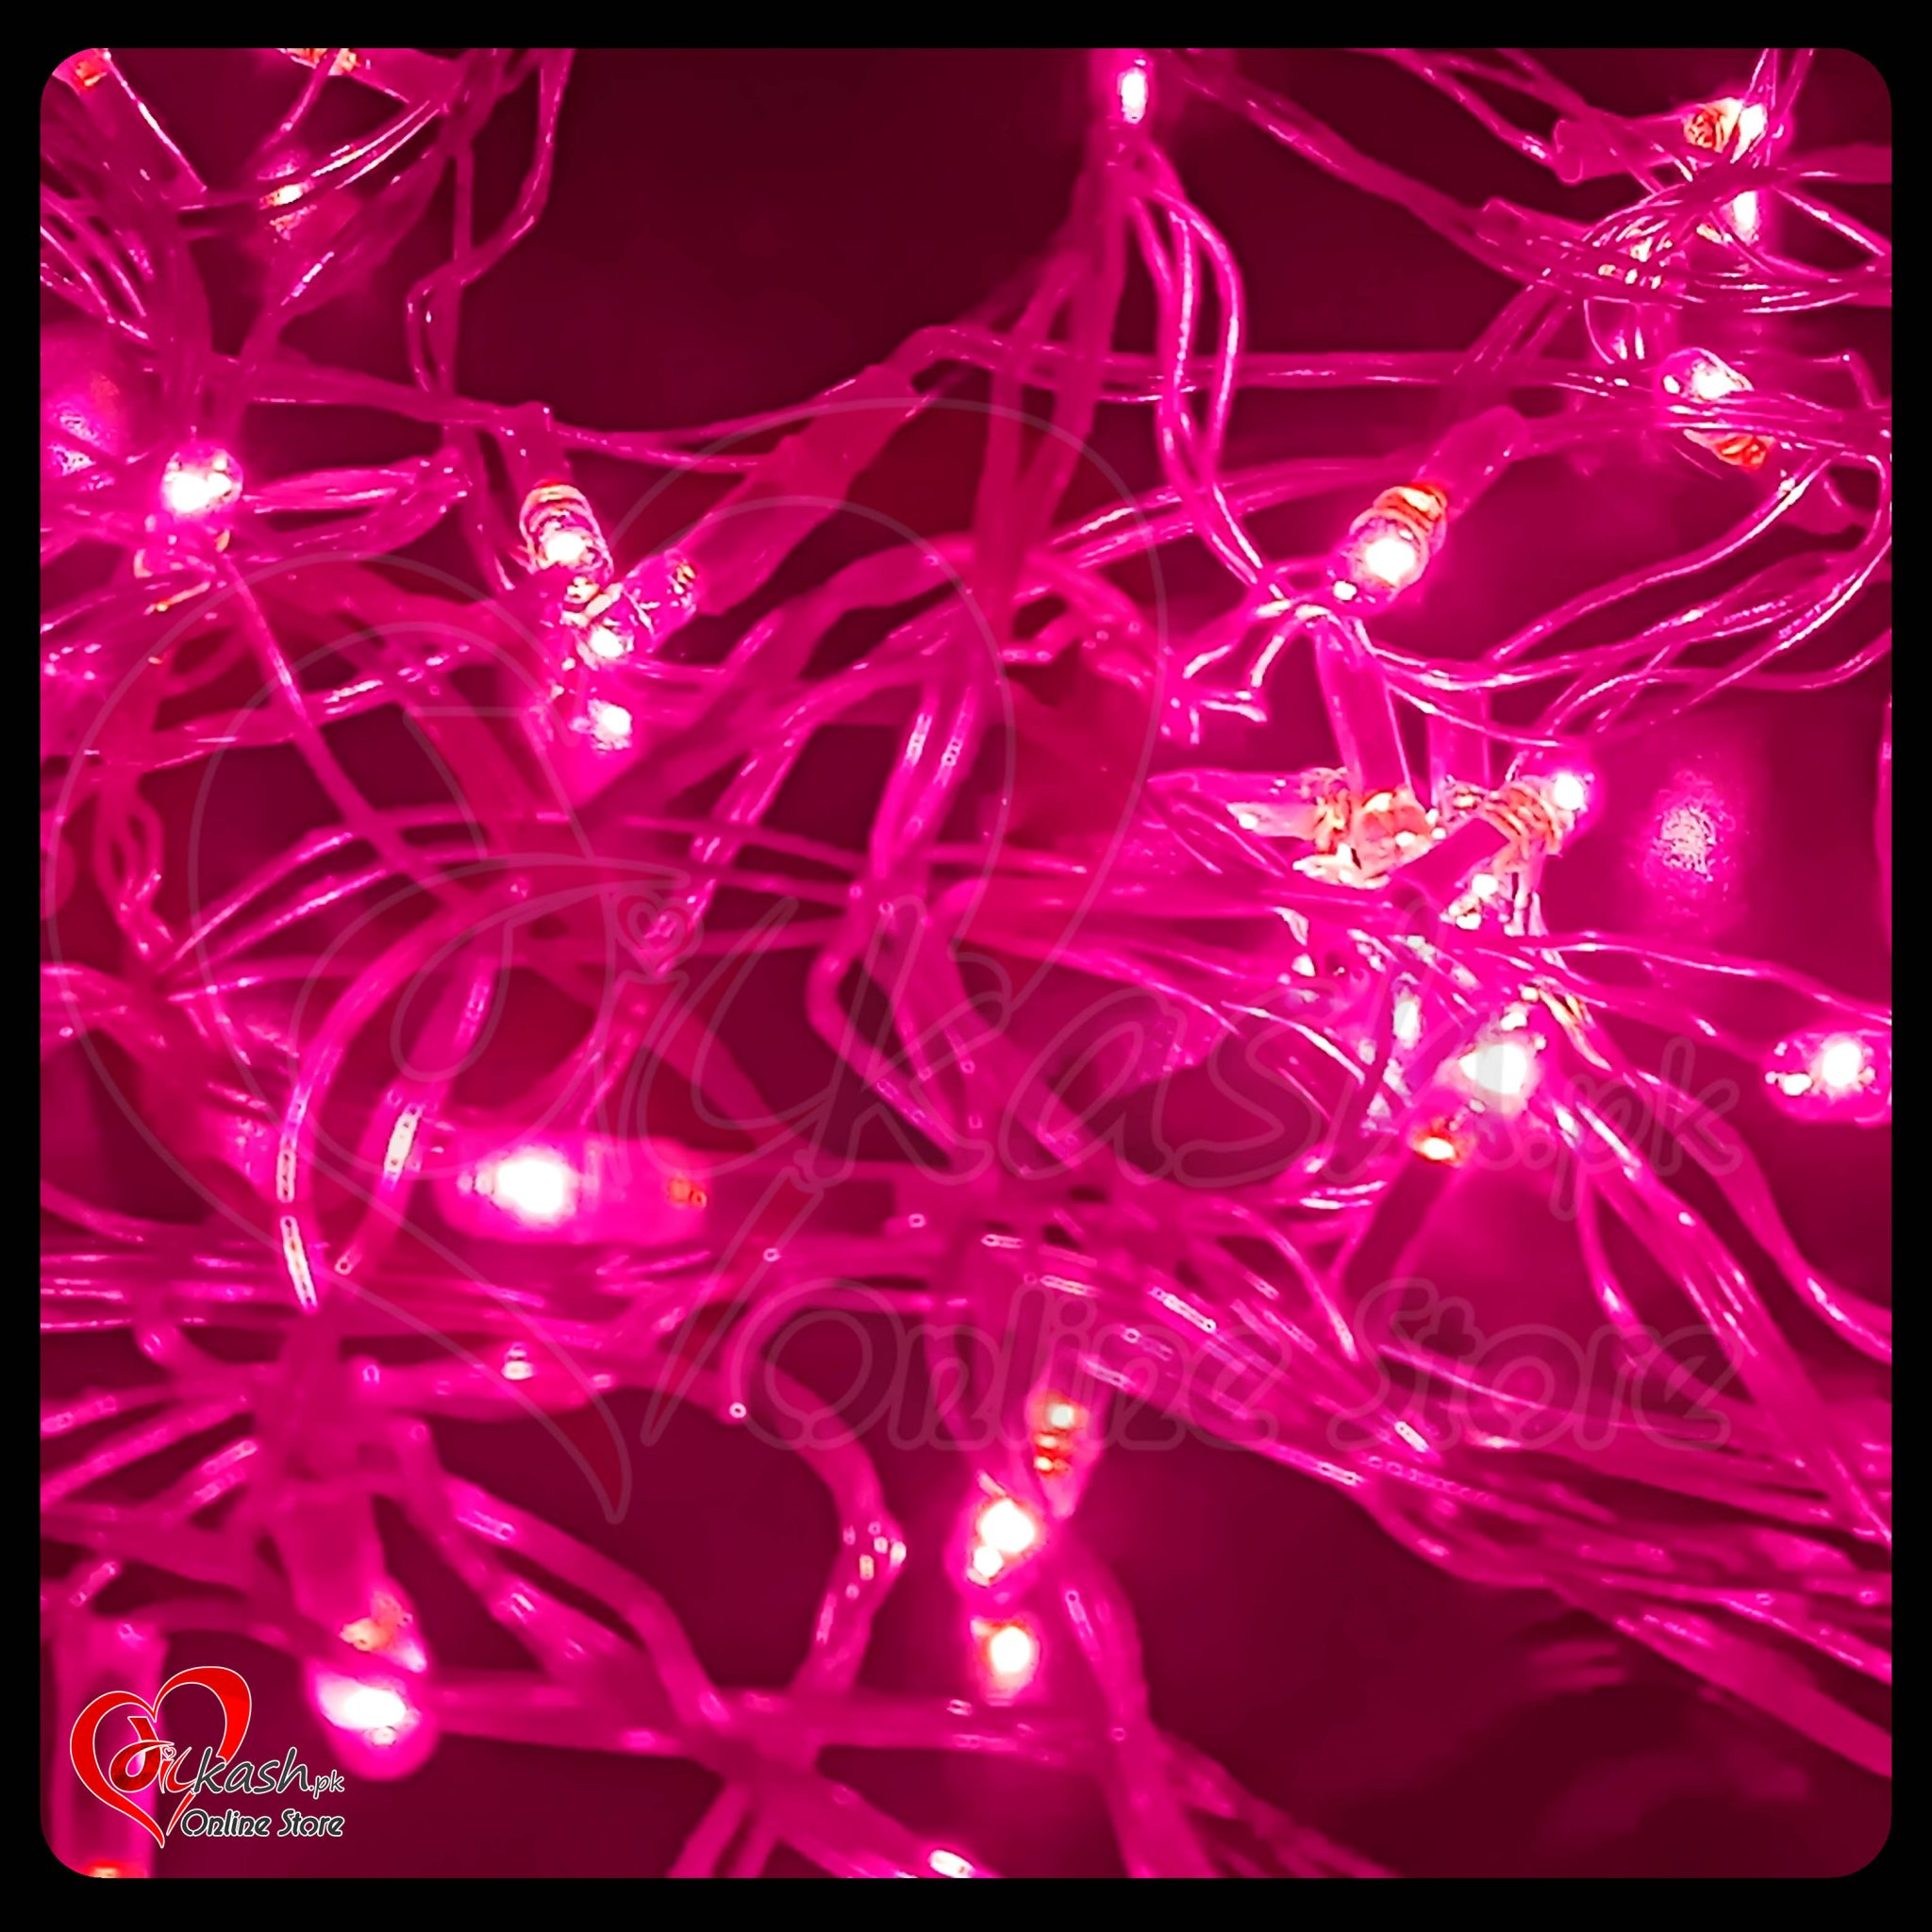 Fairy Lights Decoration LED Still - Christmas Lights - 25 Feet Long - Pink